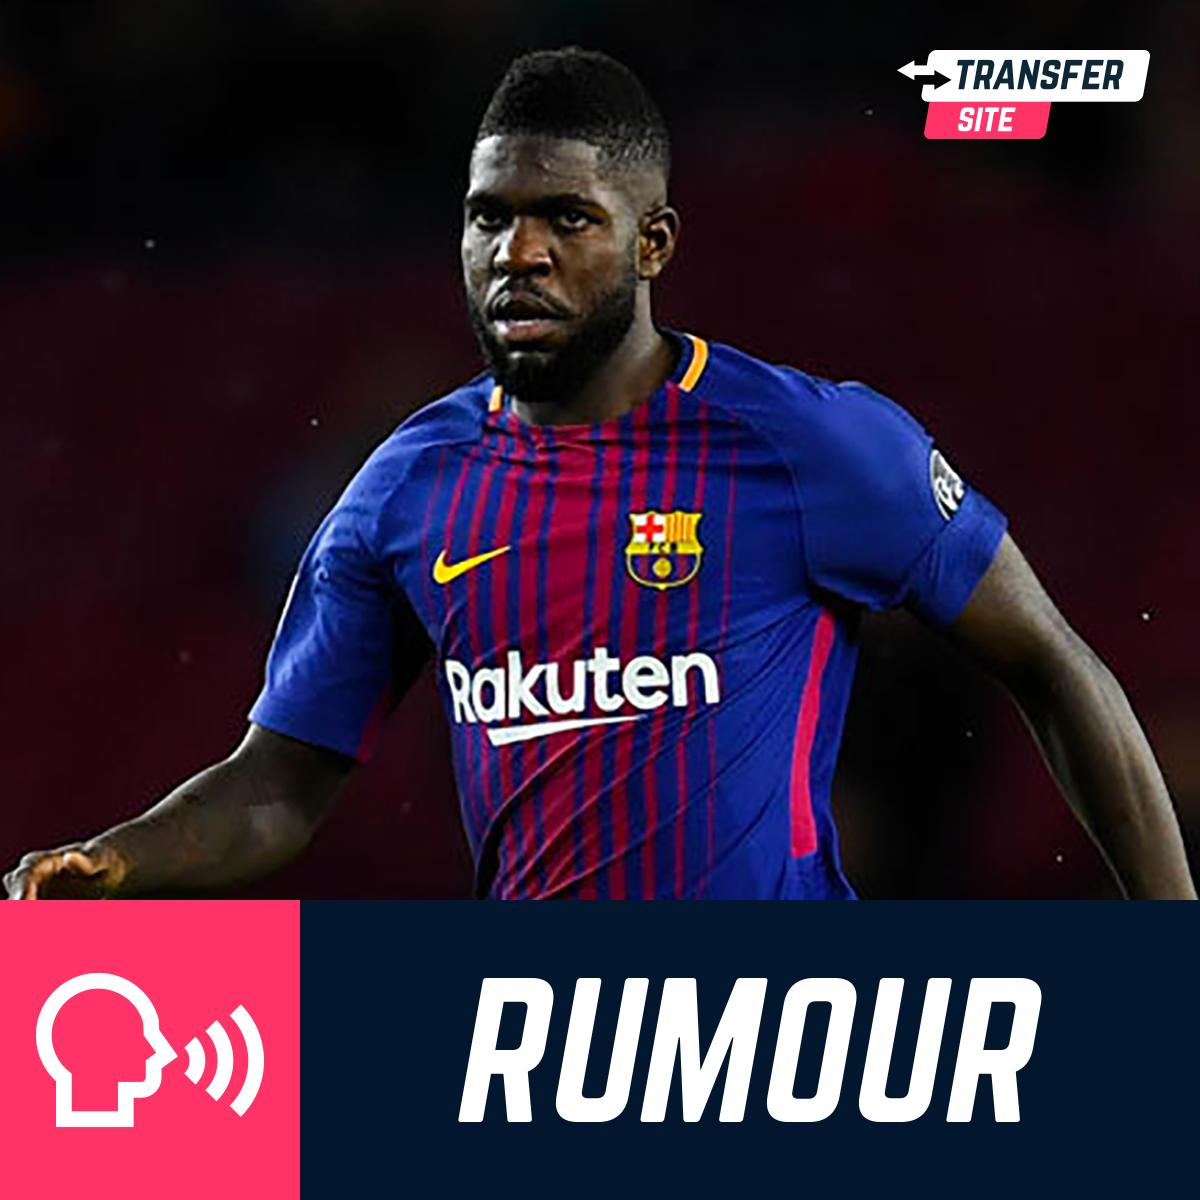 Barcelona will consider selling Samuel Umtiti to Manchester United this summer, despite the France defender wanting to stay at the La Liga club - (via Mail)  #TransferNews #MUFC